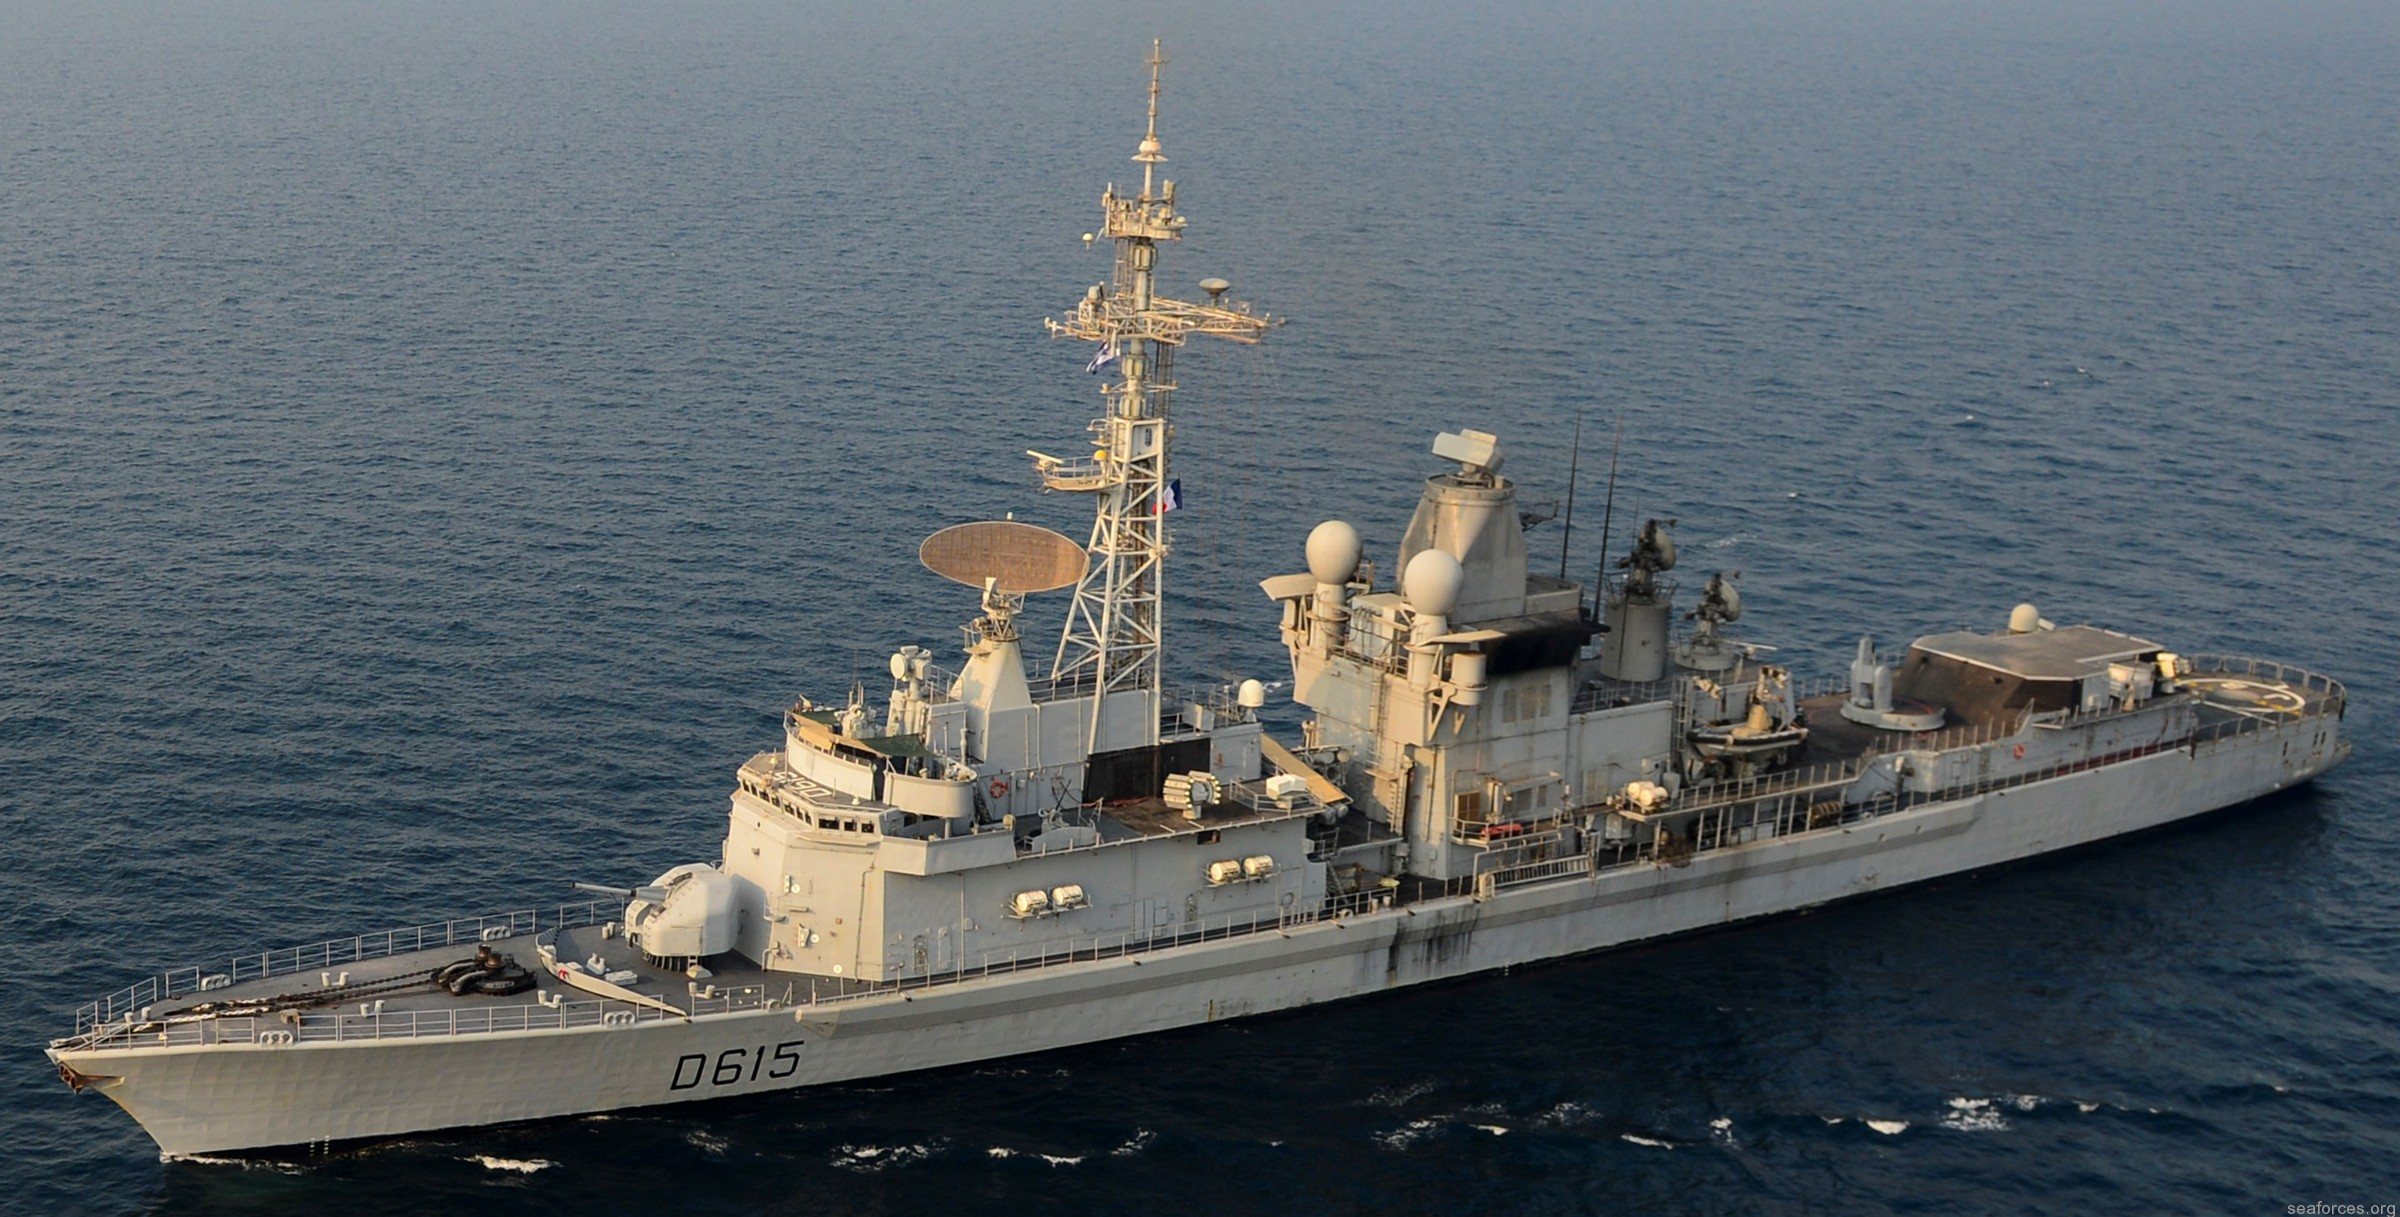 FS Jean Bart D-615 Frigate F70AA French Navy Marine Nationale